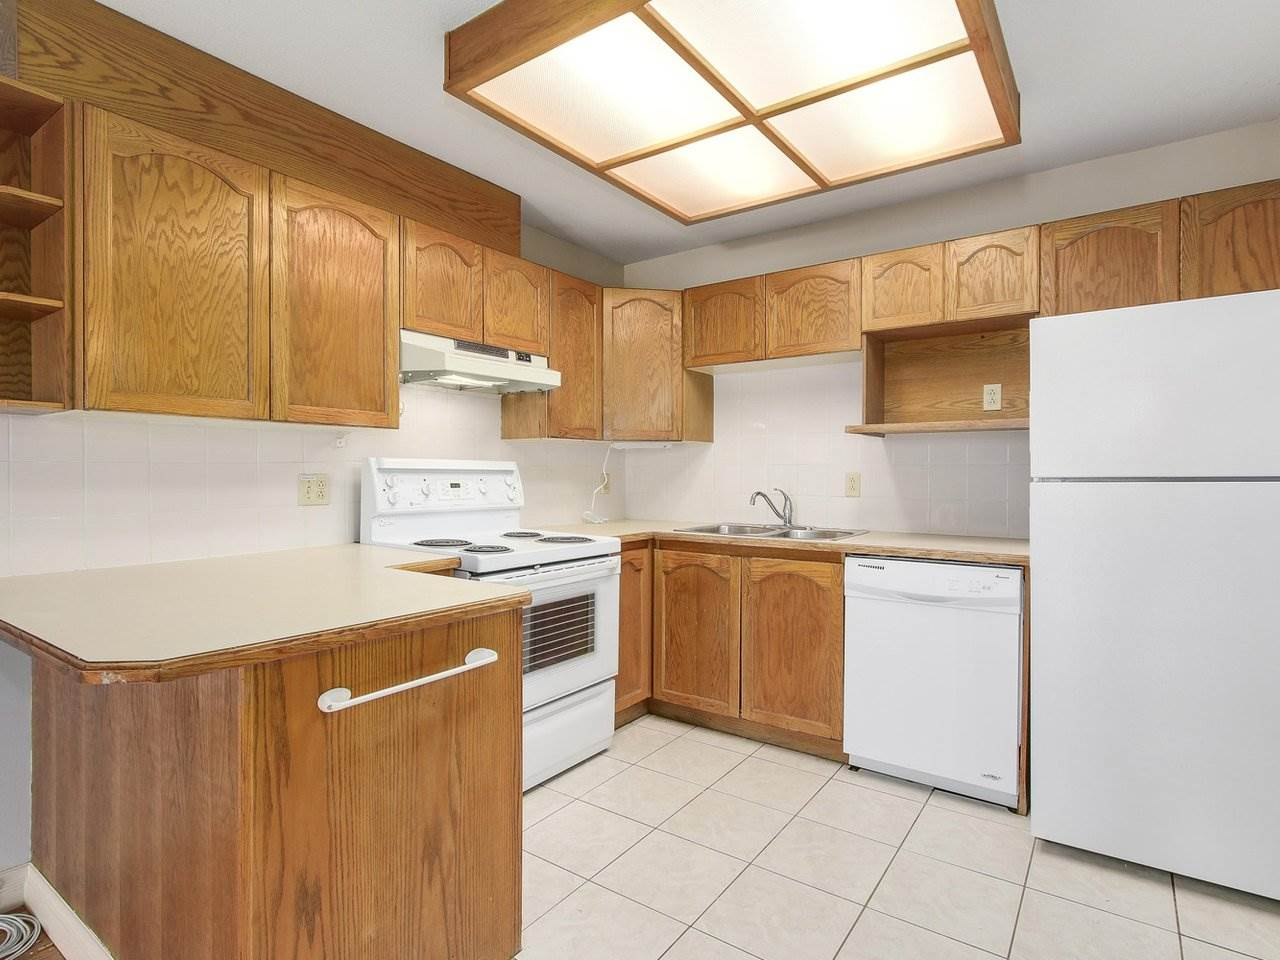 Condo Apartment at 311 13490 HILTON ROAD, Unit 311, North Surrey, British Columbia. Image 6